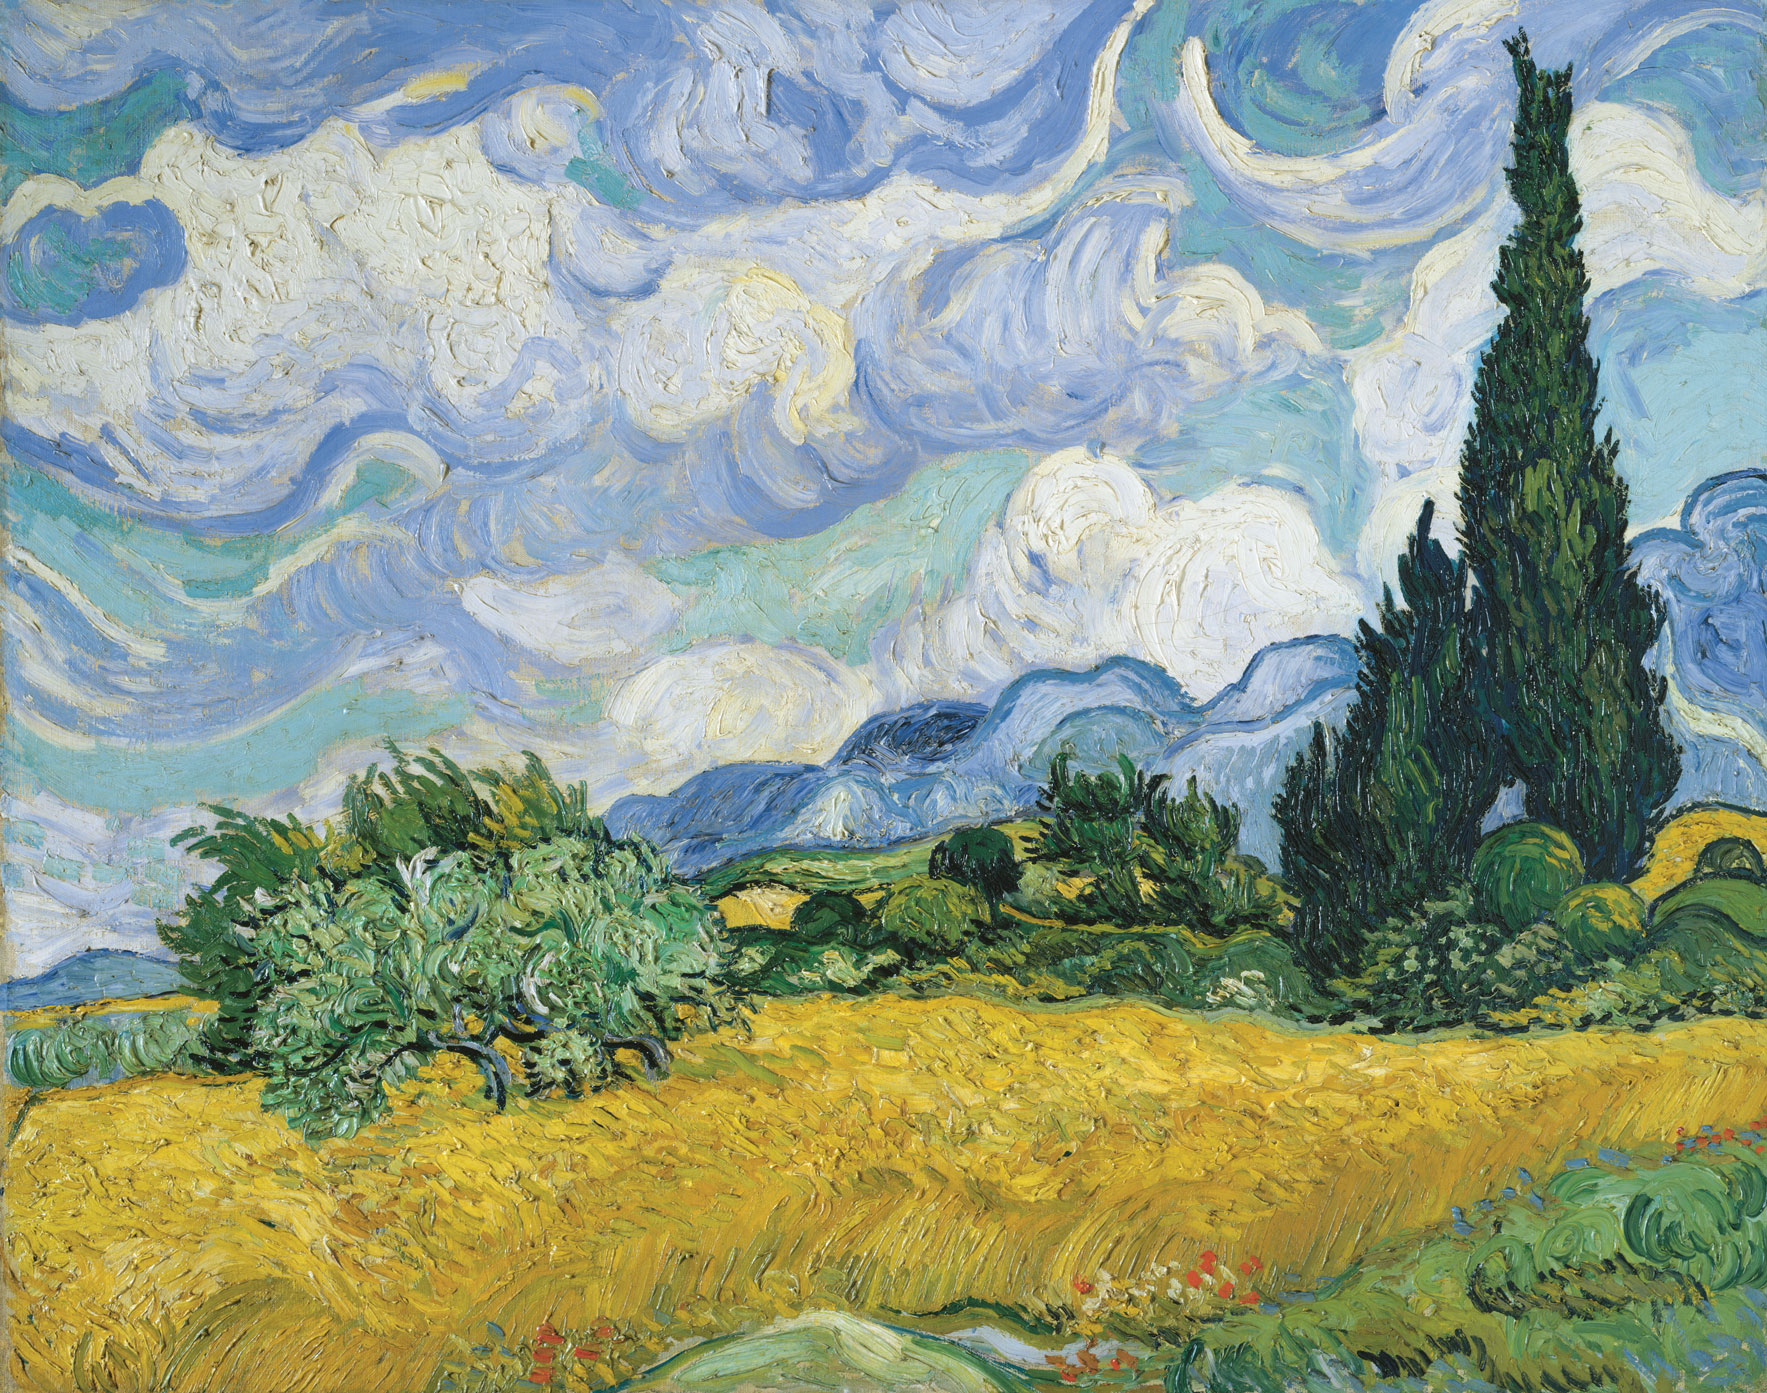 A staggering array of artists' depictions of landscape assault your eye, and you home in on a soothing painting by van Gogh called Wheat Field with Cypress. From Art =